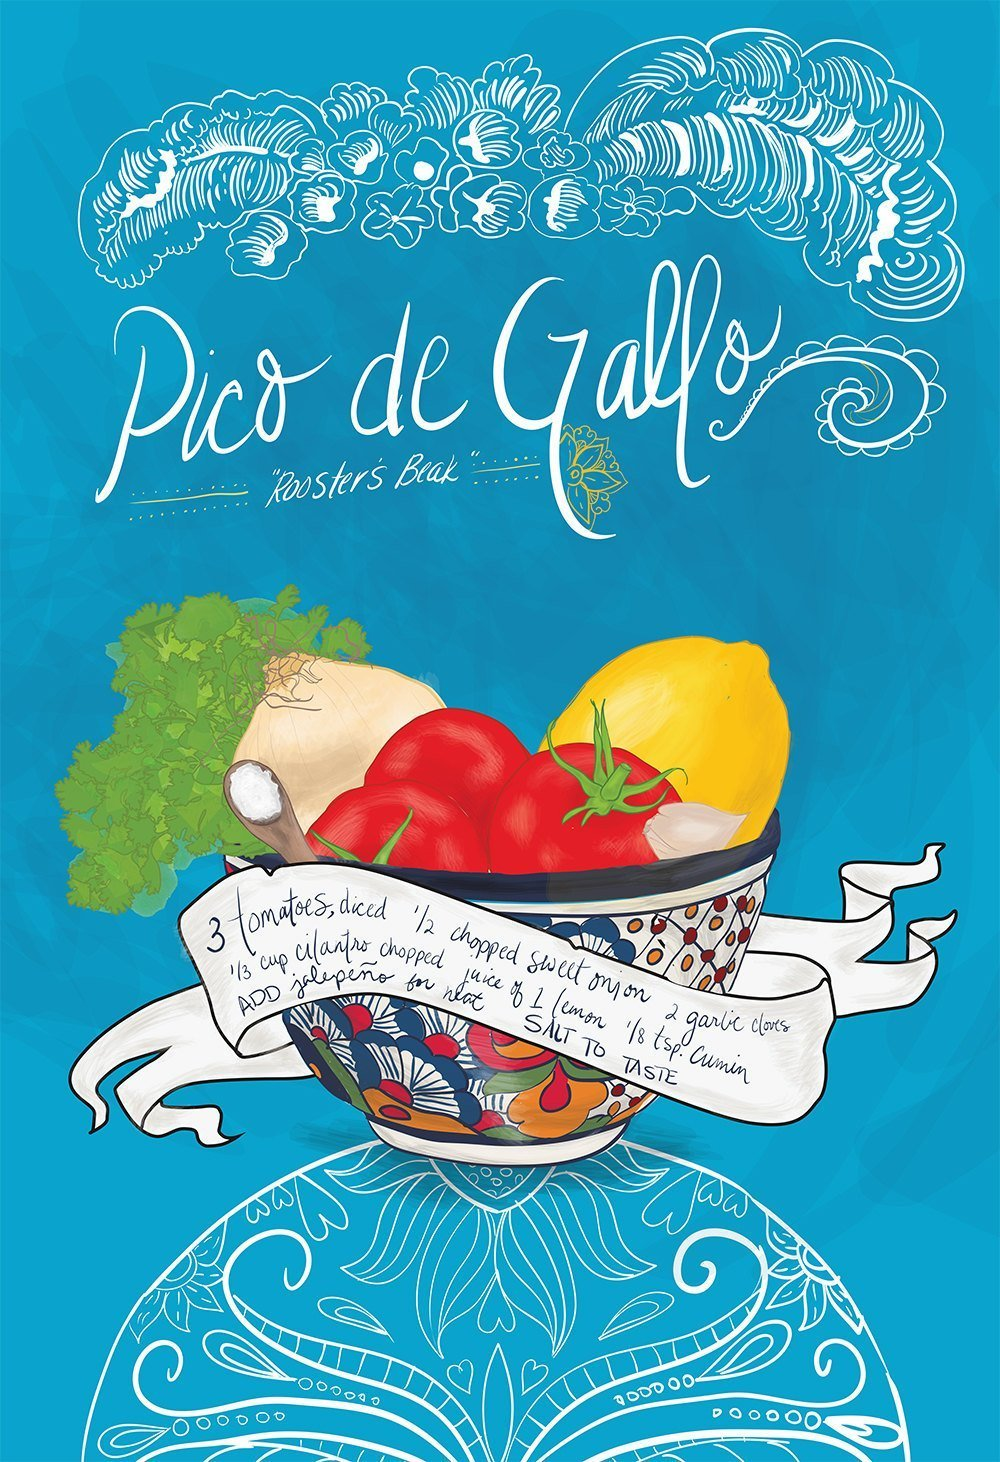 Amazon.com: Pico De Gallo Recipe Mexican Kitchen Print Illustrated Dia de los Muertos Salsa Recipe Giclee on Paper Canvas and Cotton Canvas Wall Decor Art: ...